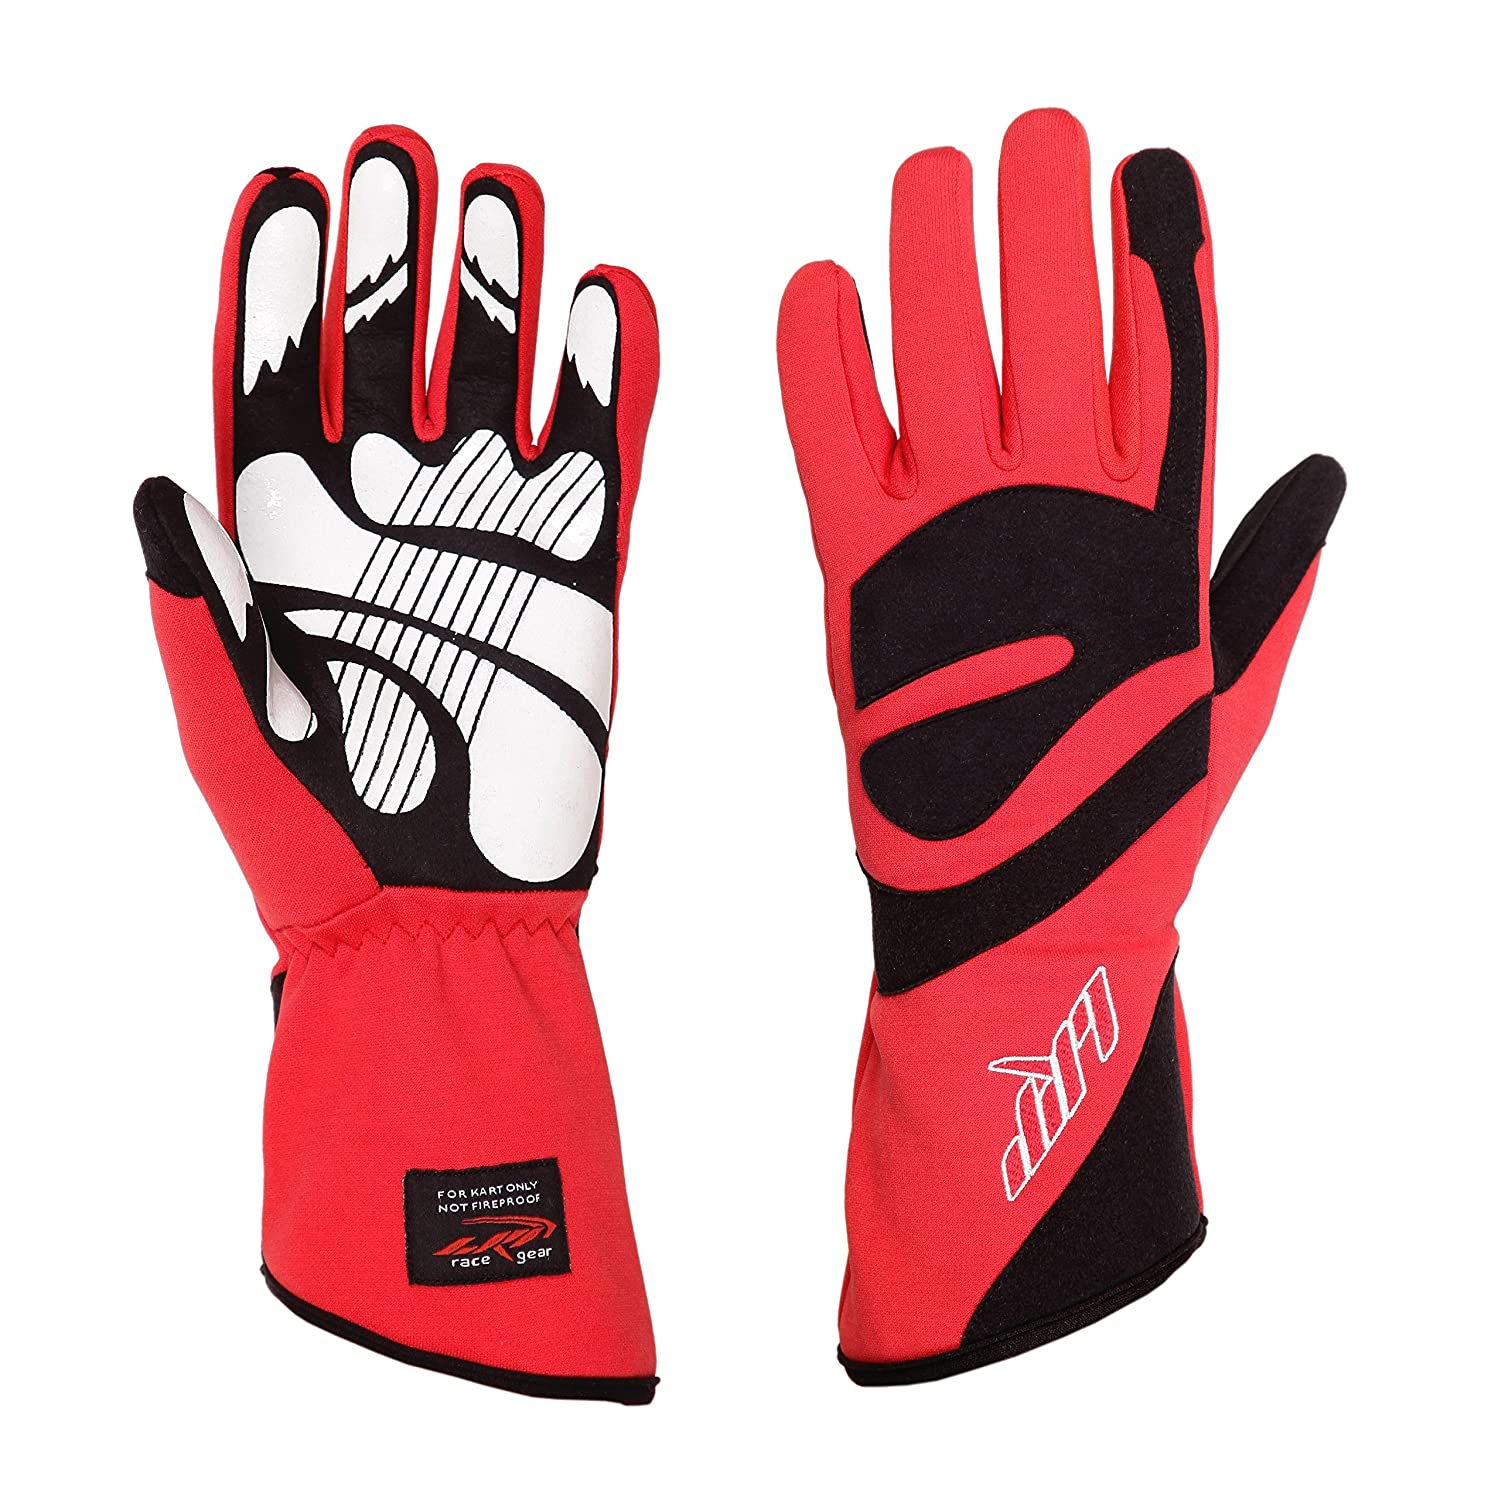 LRP Kart Racing Gloves Red, M Freedom Gloves Highest protection